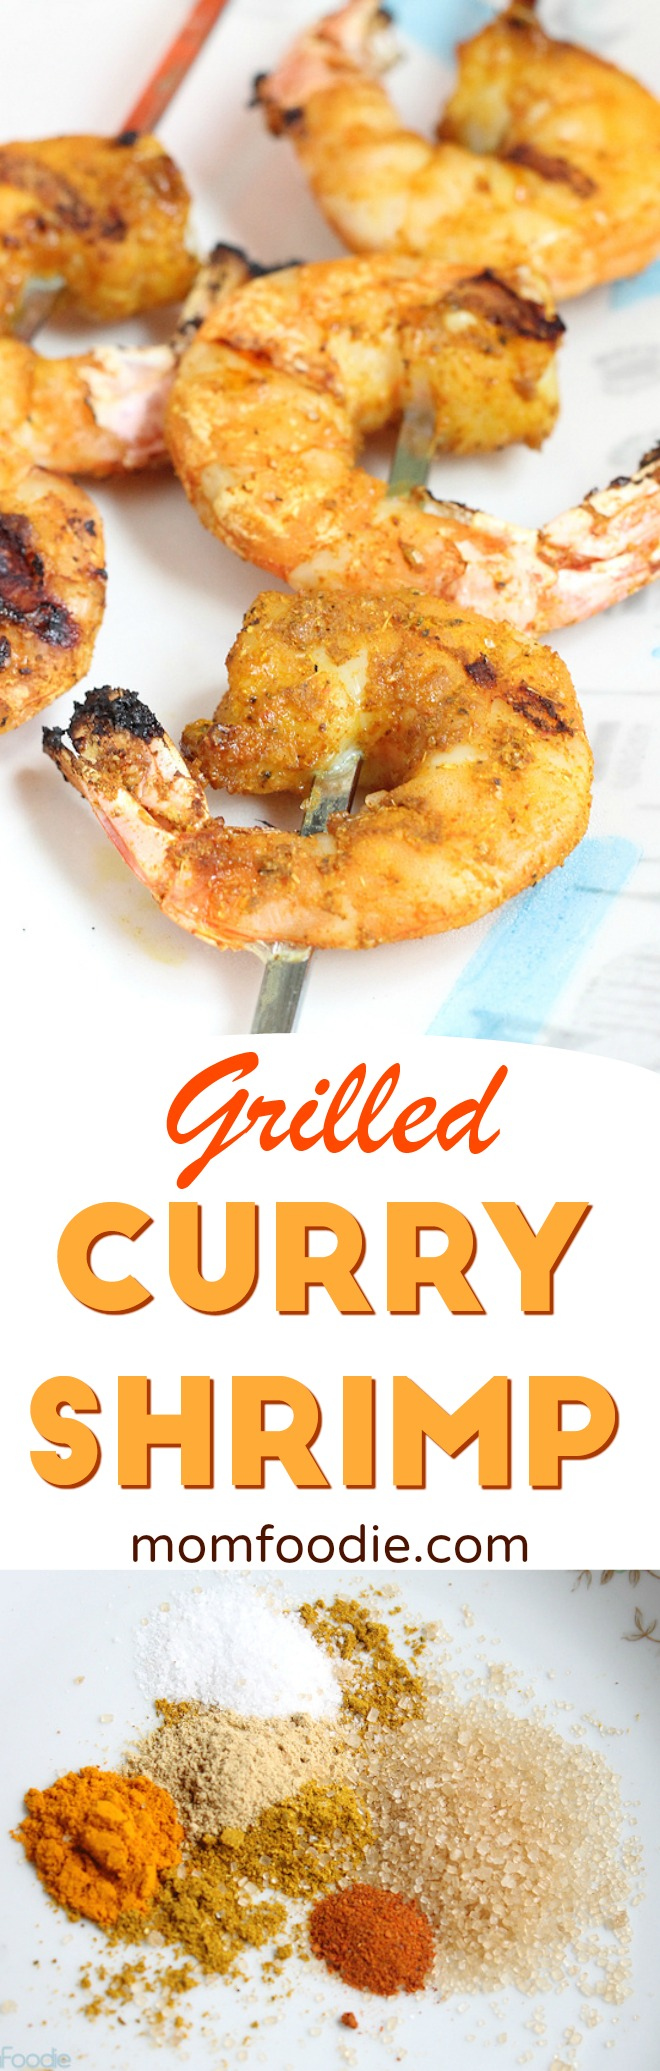 Grilled Curry Shrimp - Grilled wild shrimp in a sweet and spicy curry dry rub.